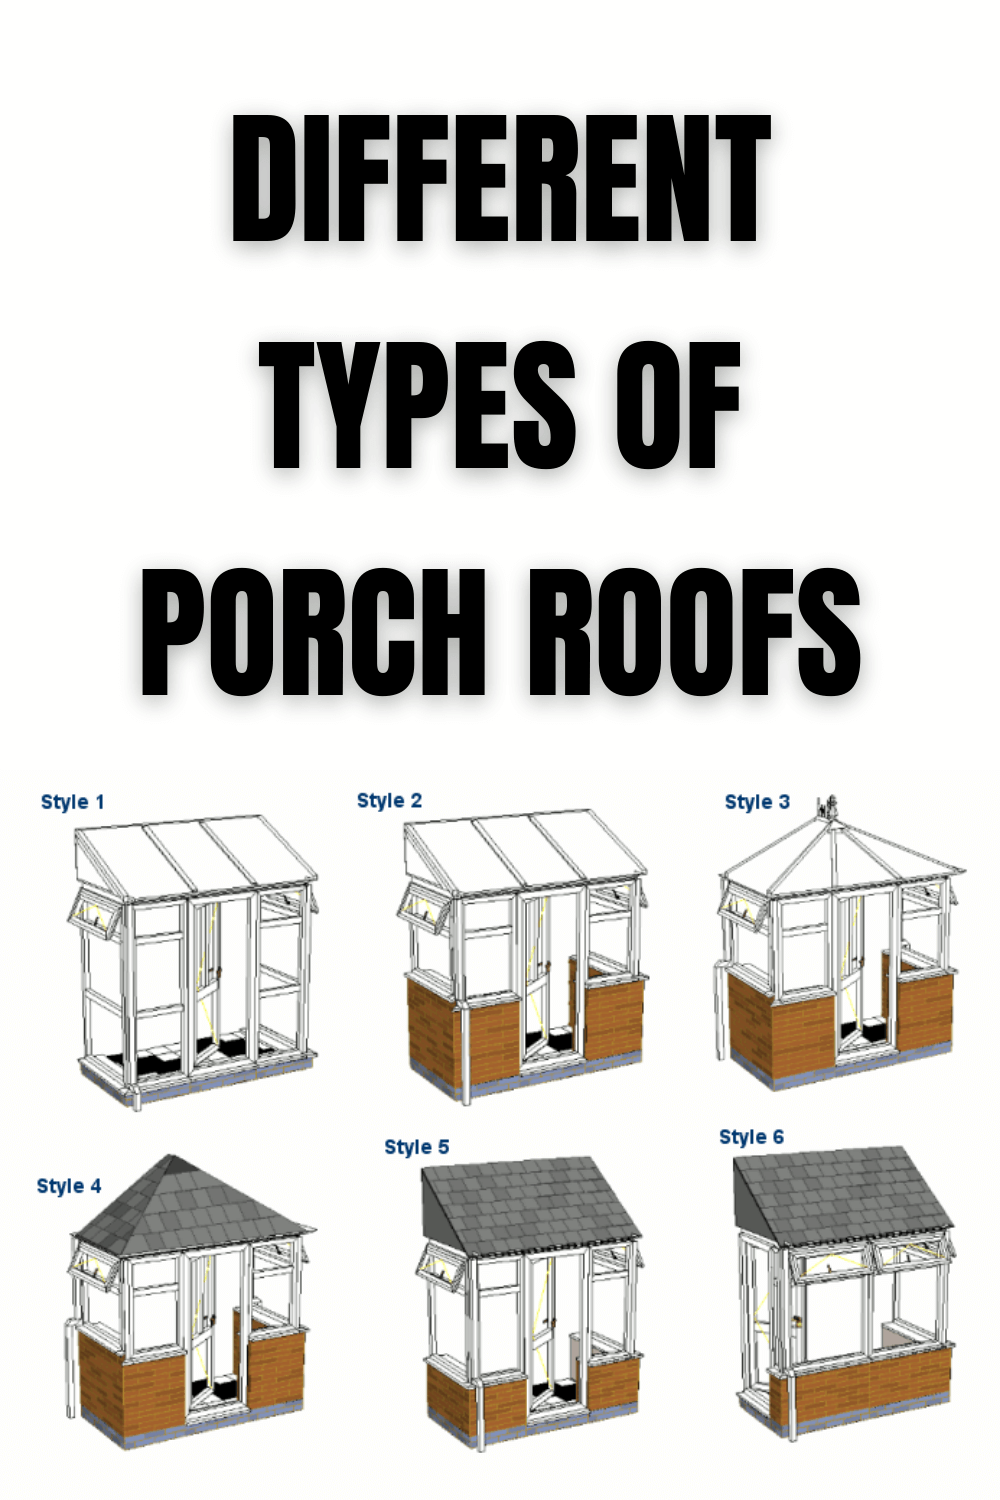 DIFFERENT TYPES OF PORCH ROOFS